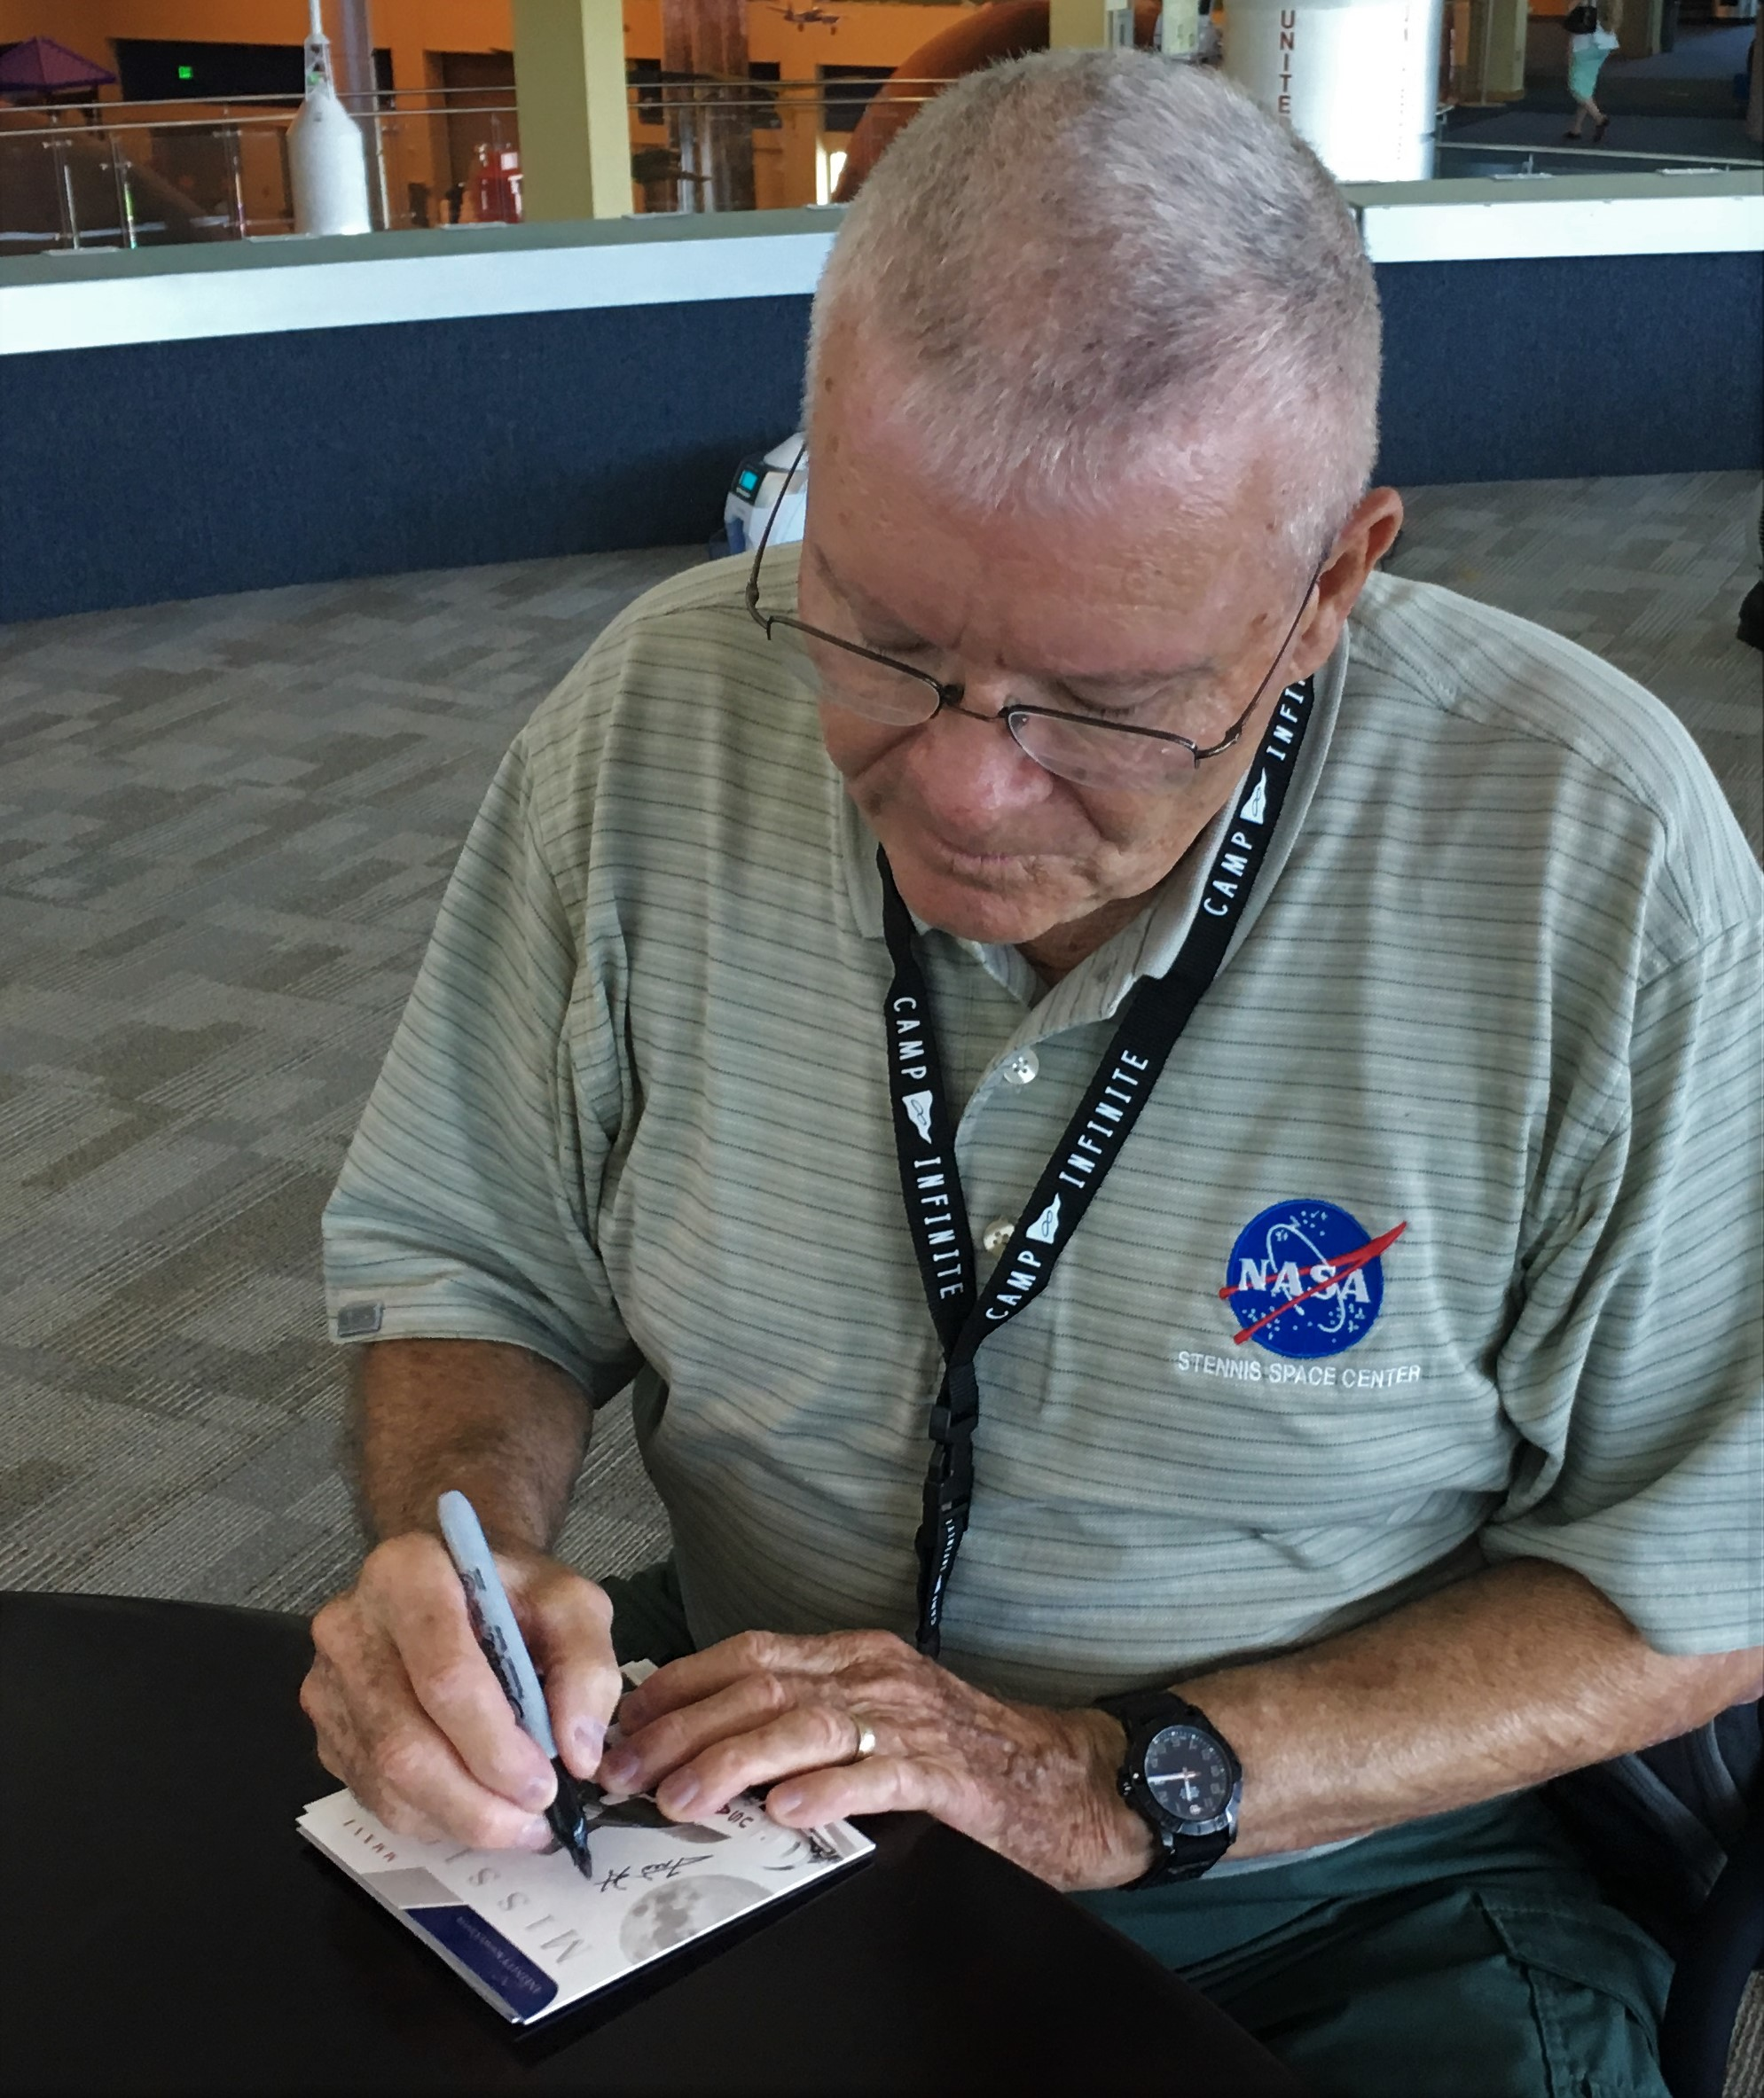 Fred Haise signing Apollo 19 commemorative patch